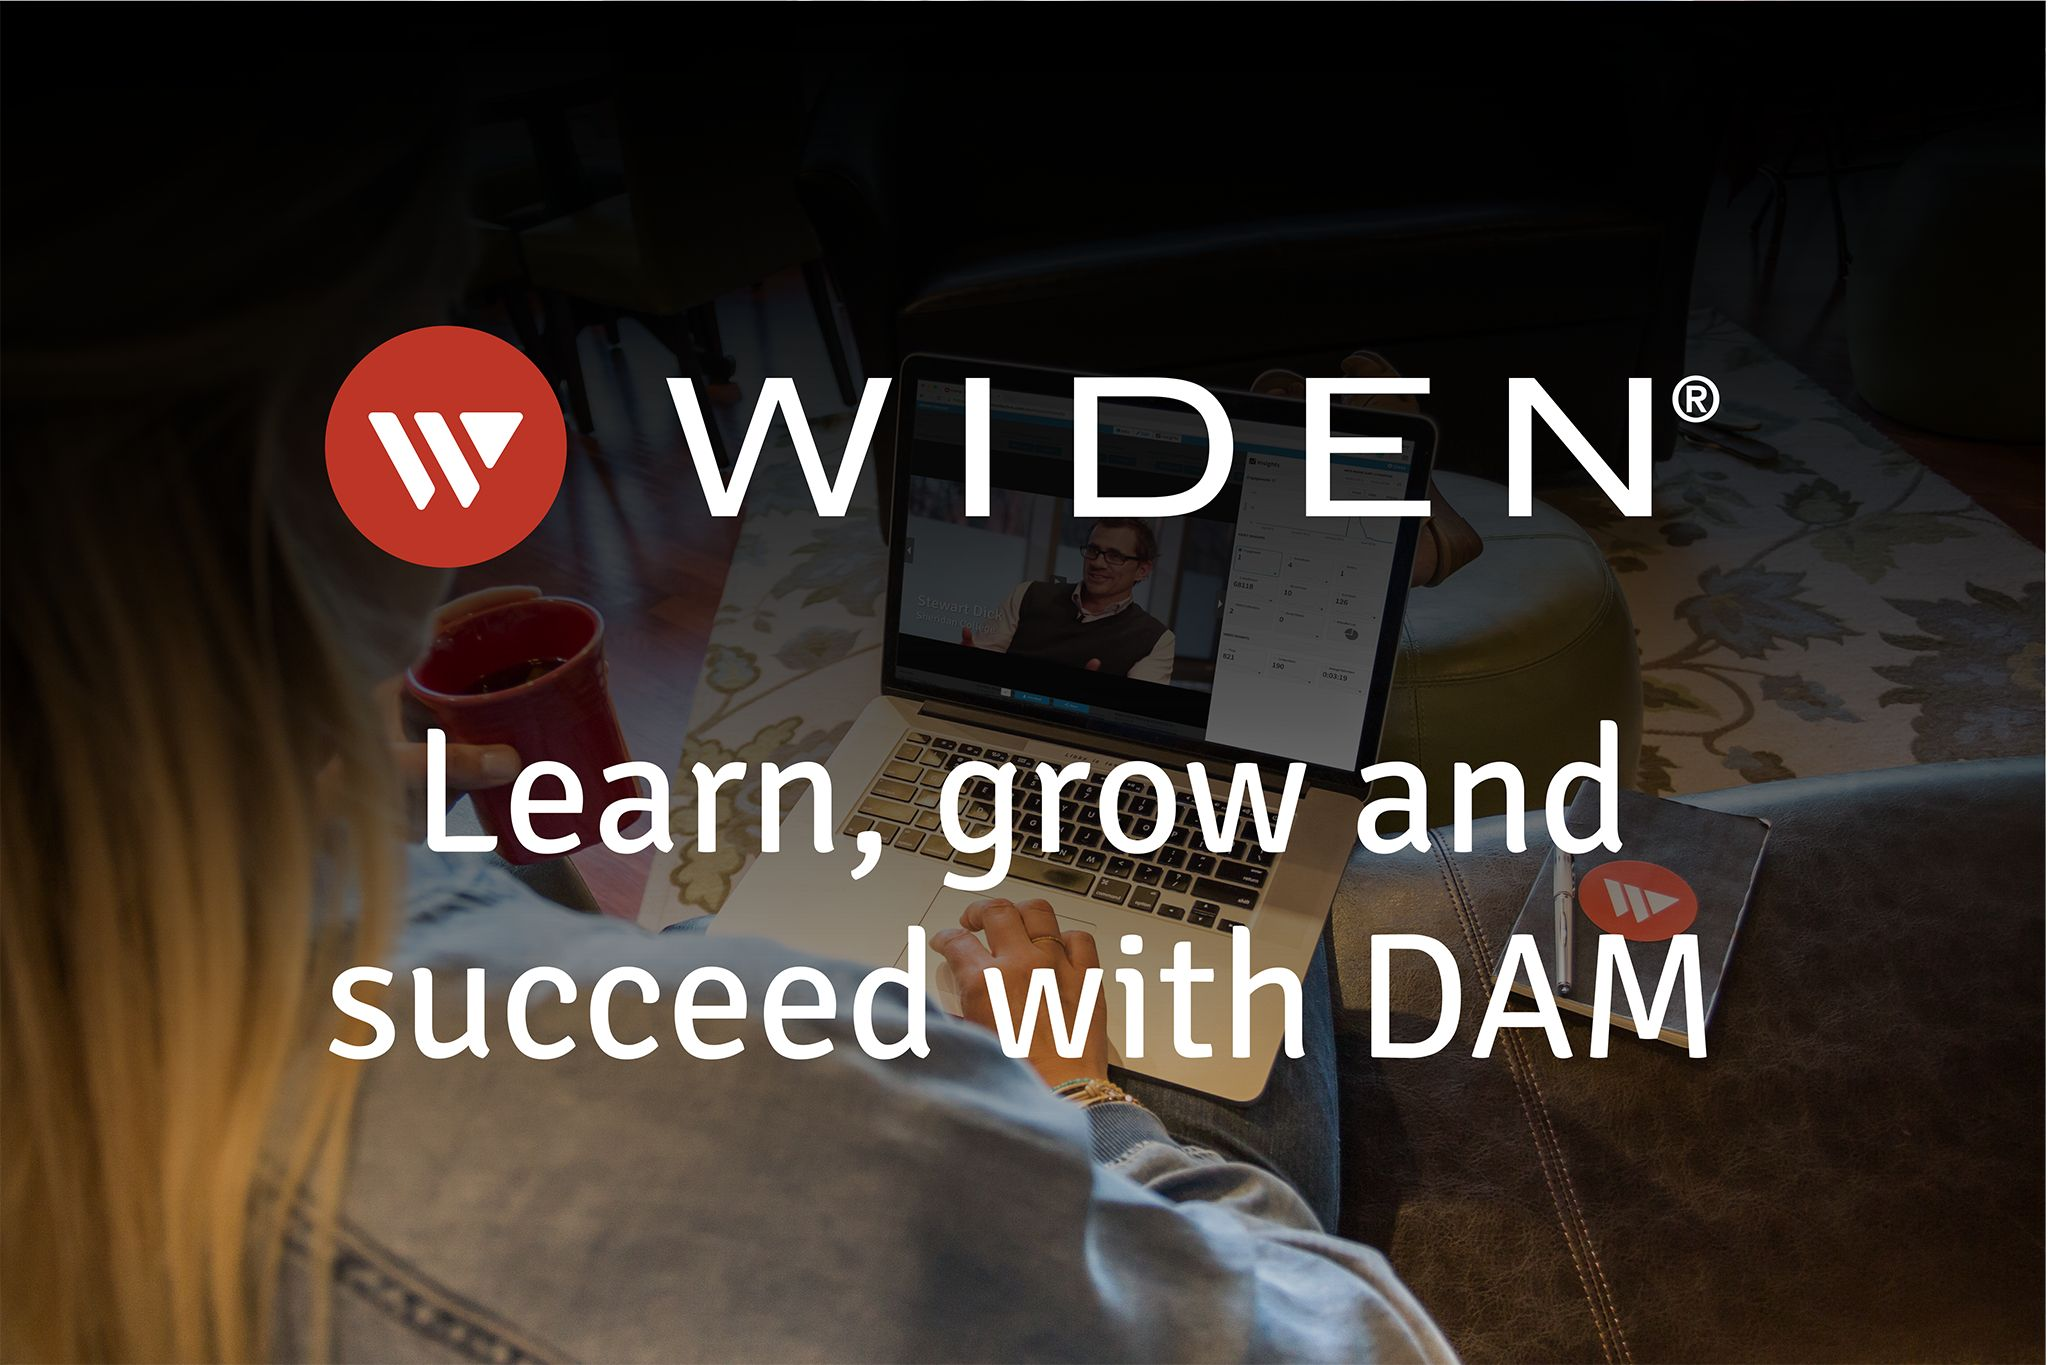 Widen Webinars - Learn, grow and succeed with DAM